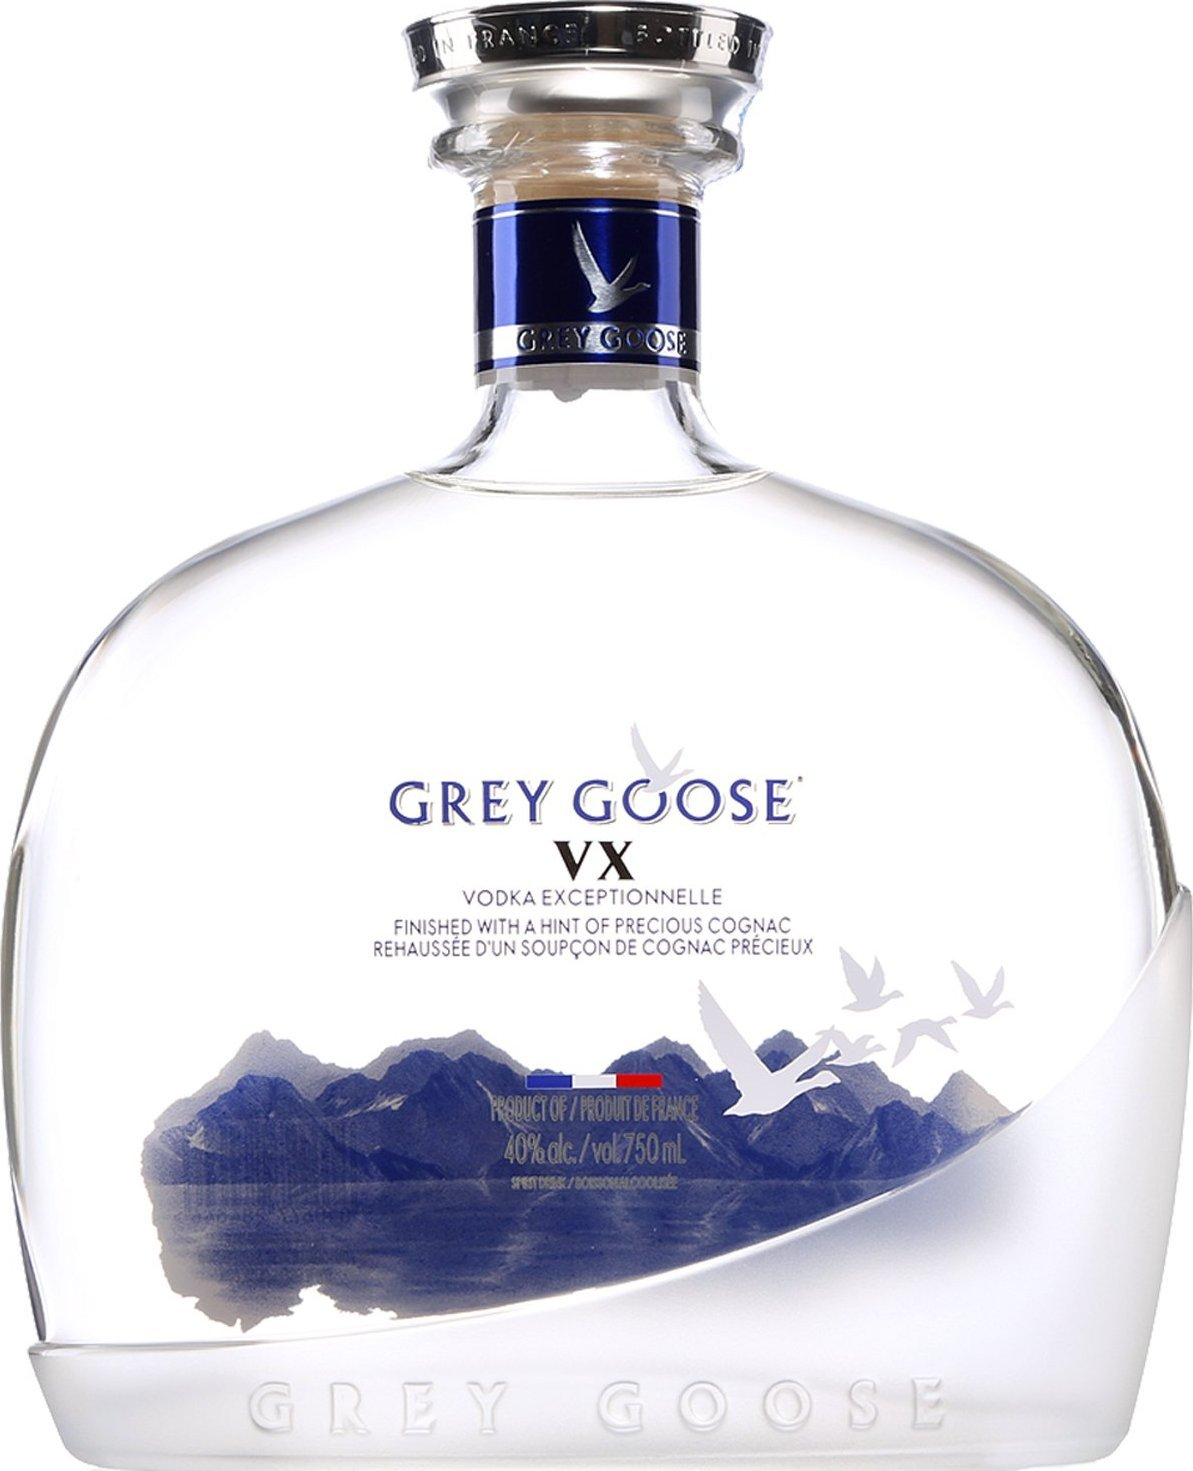 Grey Goose Vodka Label Grey Goose Vx - Expert...